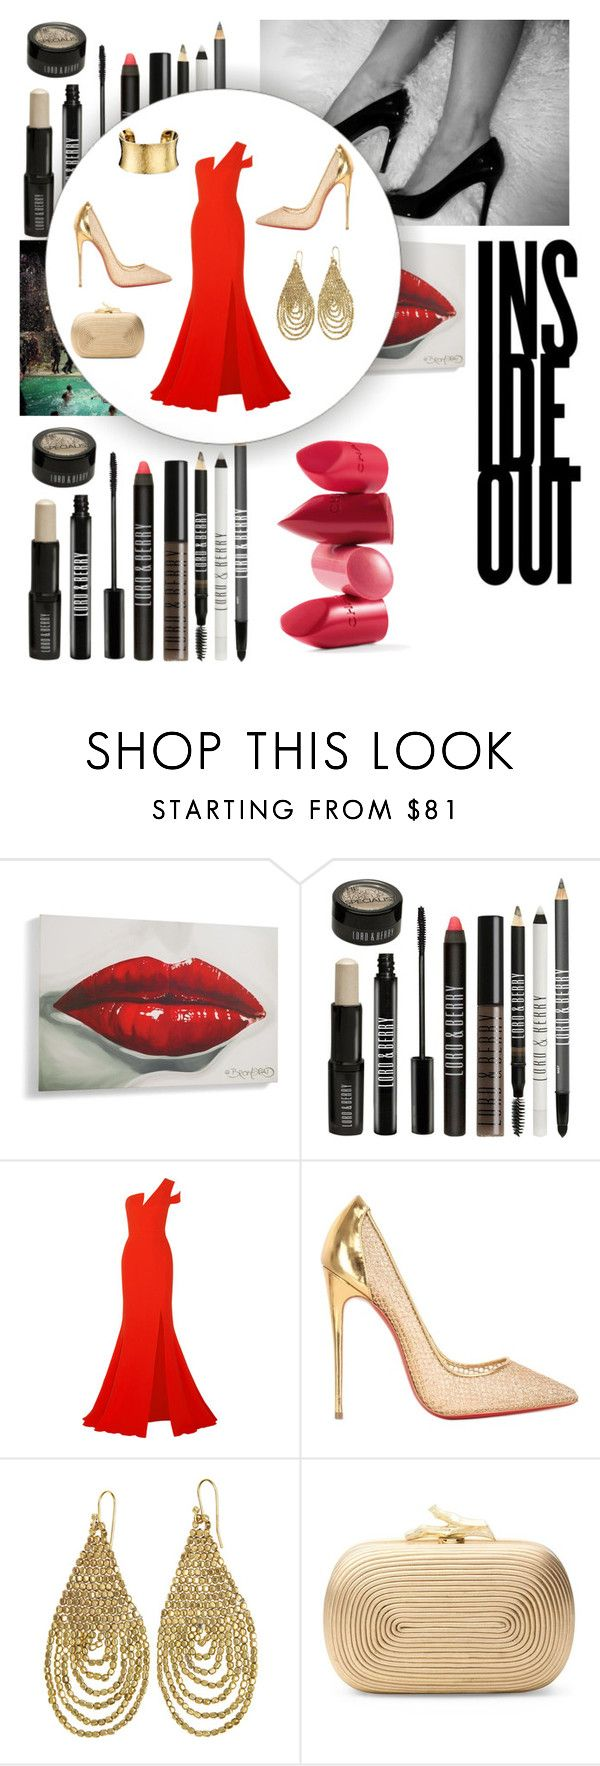 """Gold"" by marisilva-1 ❤ liked on Polyvore featuring Rossetto, Lord & Berry, Antonio Berardi, Christian Louboutin, Ellen Crawford Designs, Diane Von Furstenberg and Calvin Klein"